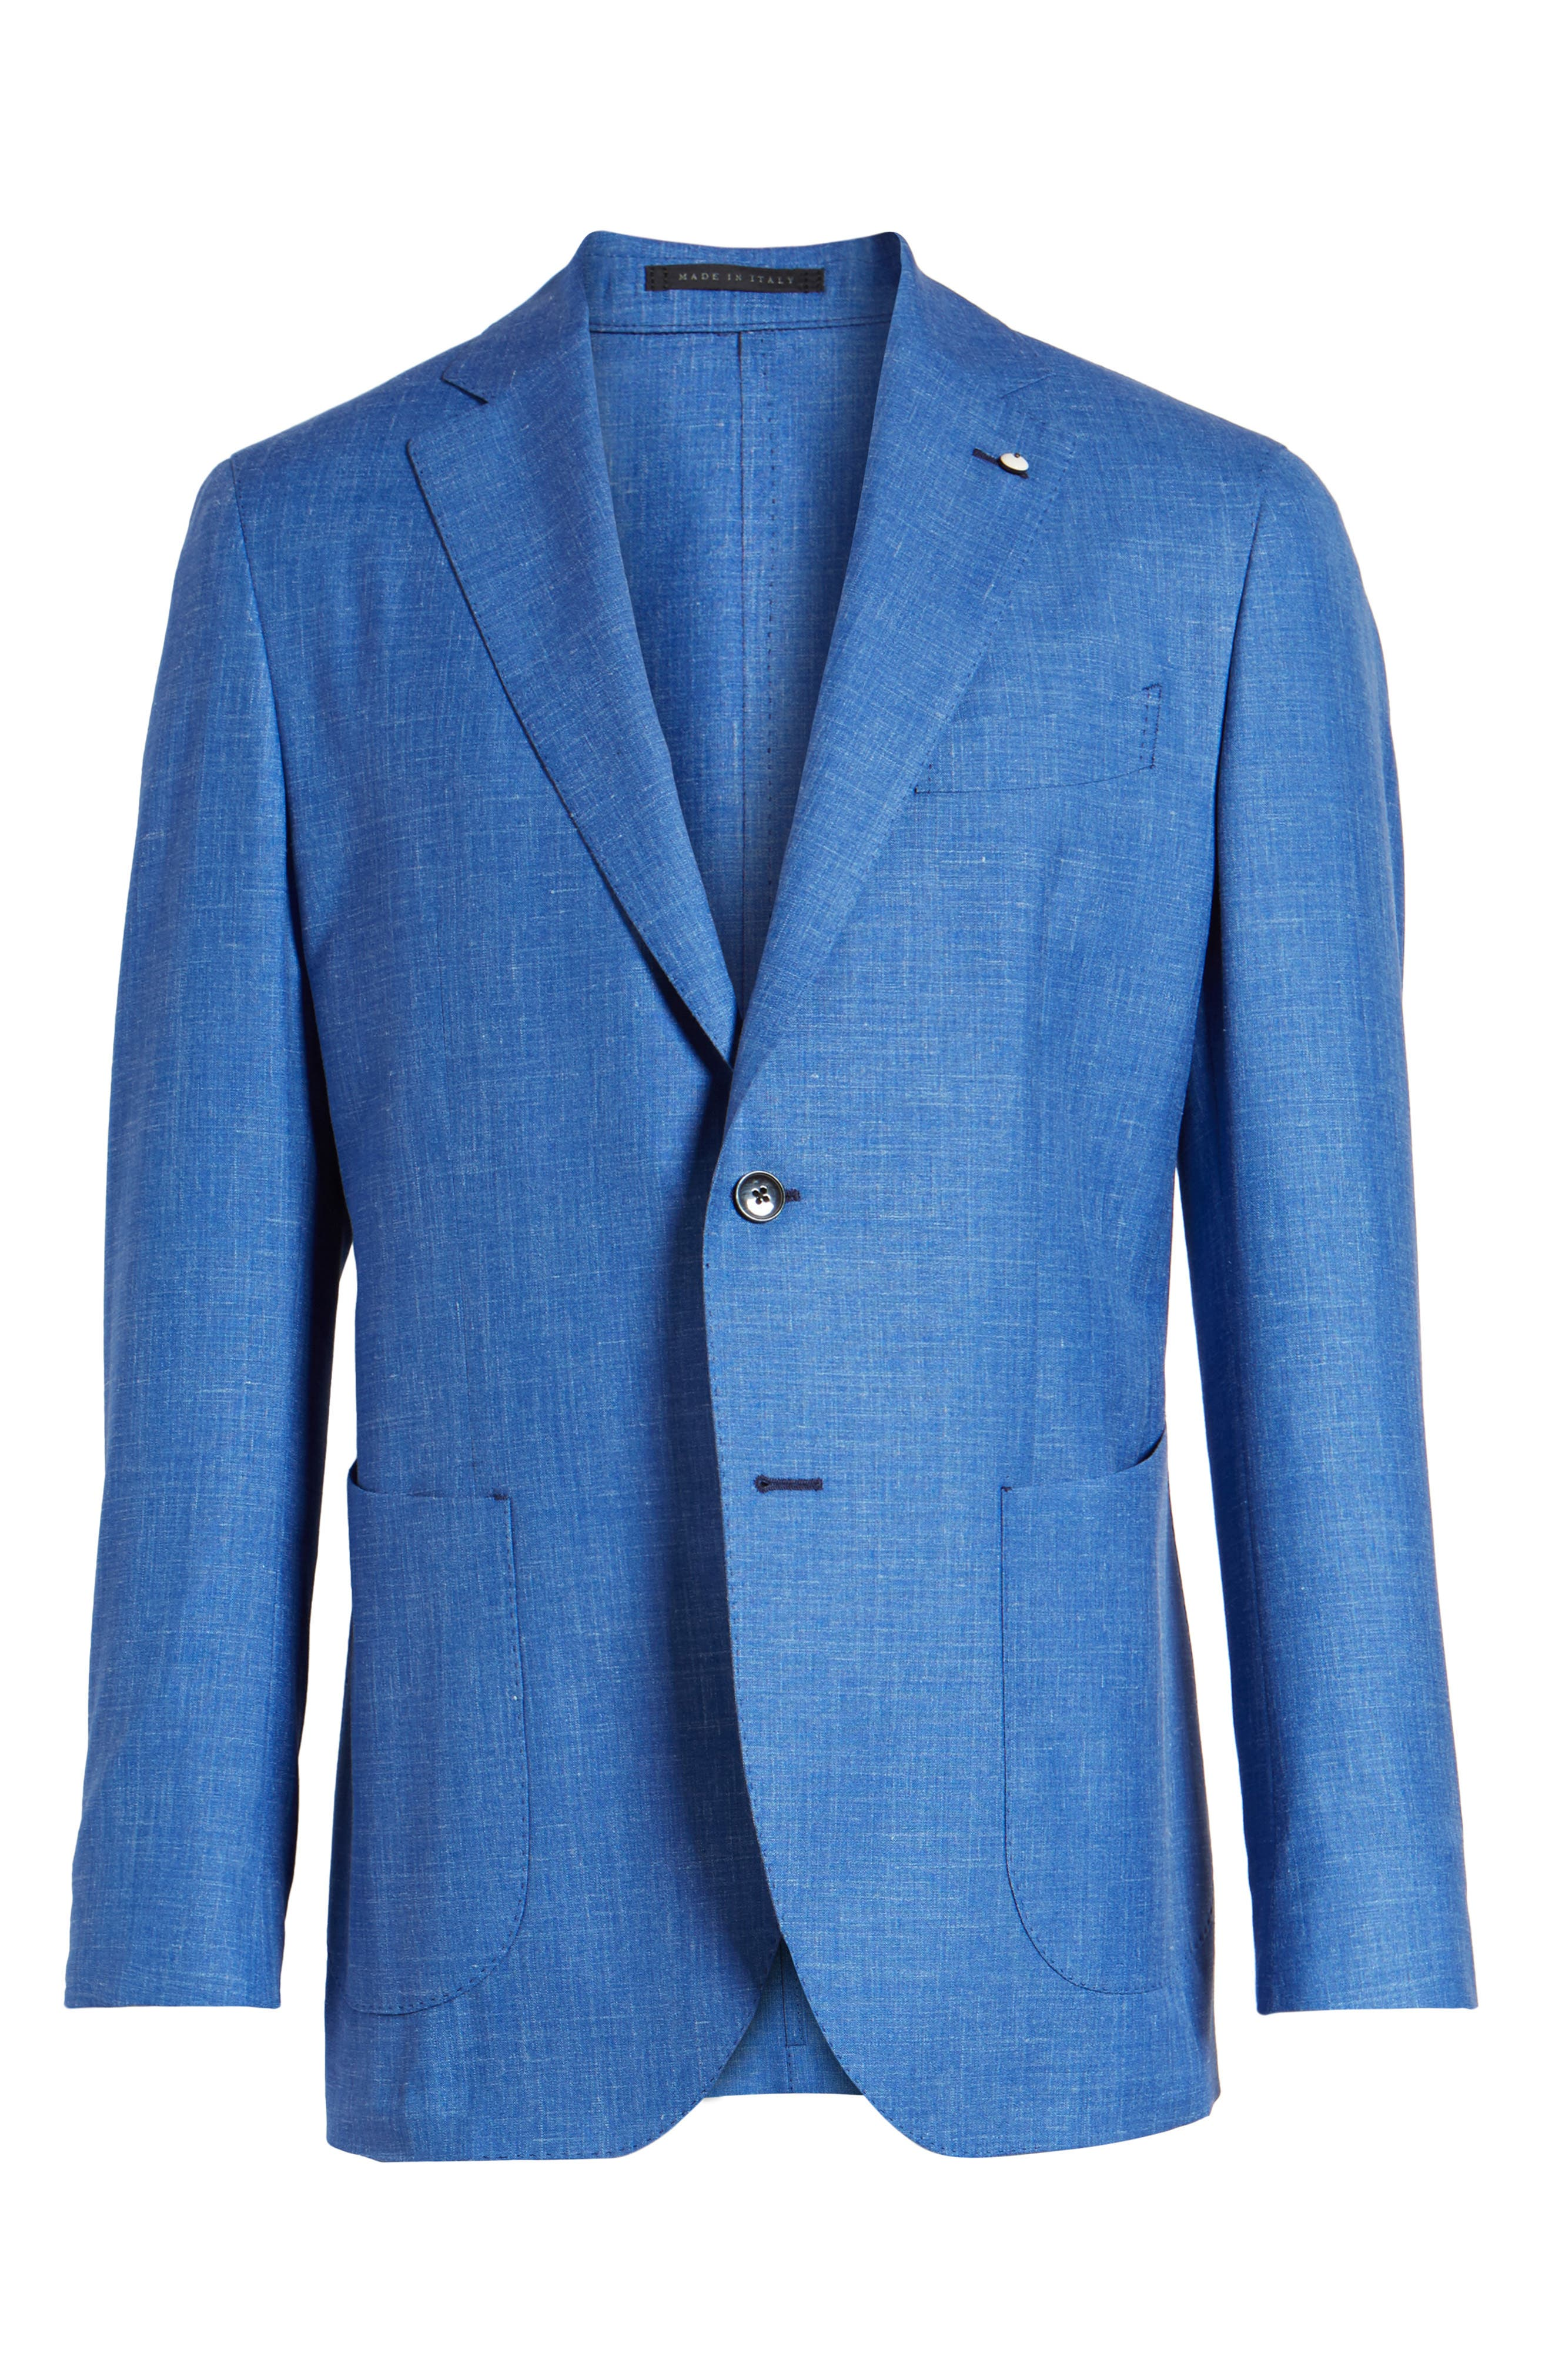 Classic Fit Wool Blend Blazer,                             Alternate thumbnail 5, color,                             410